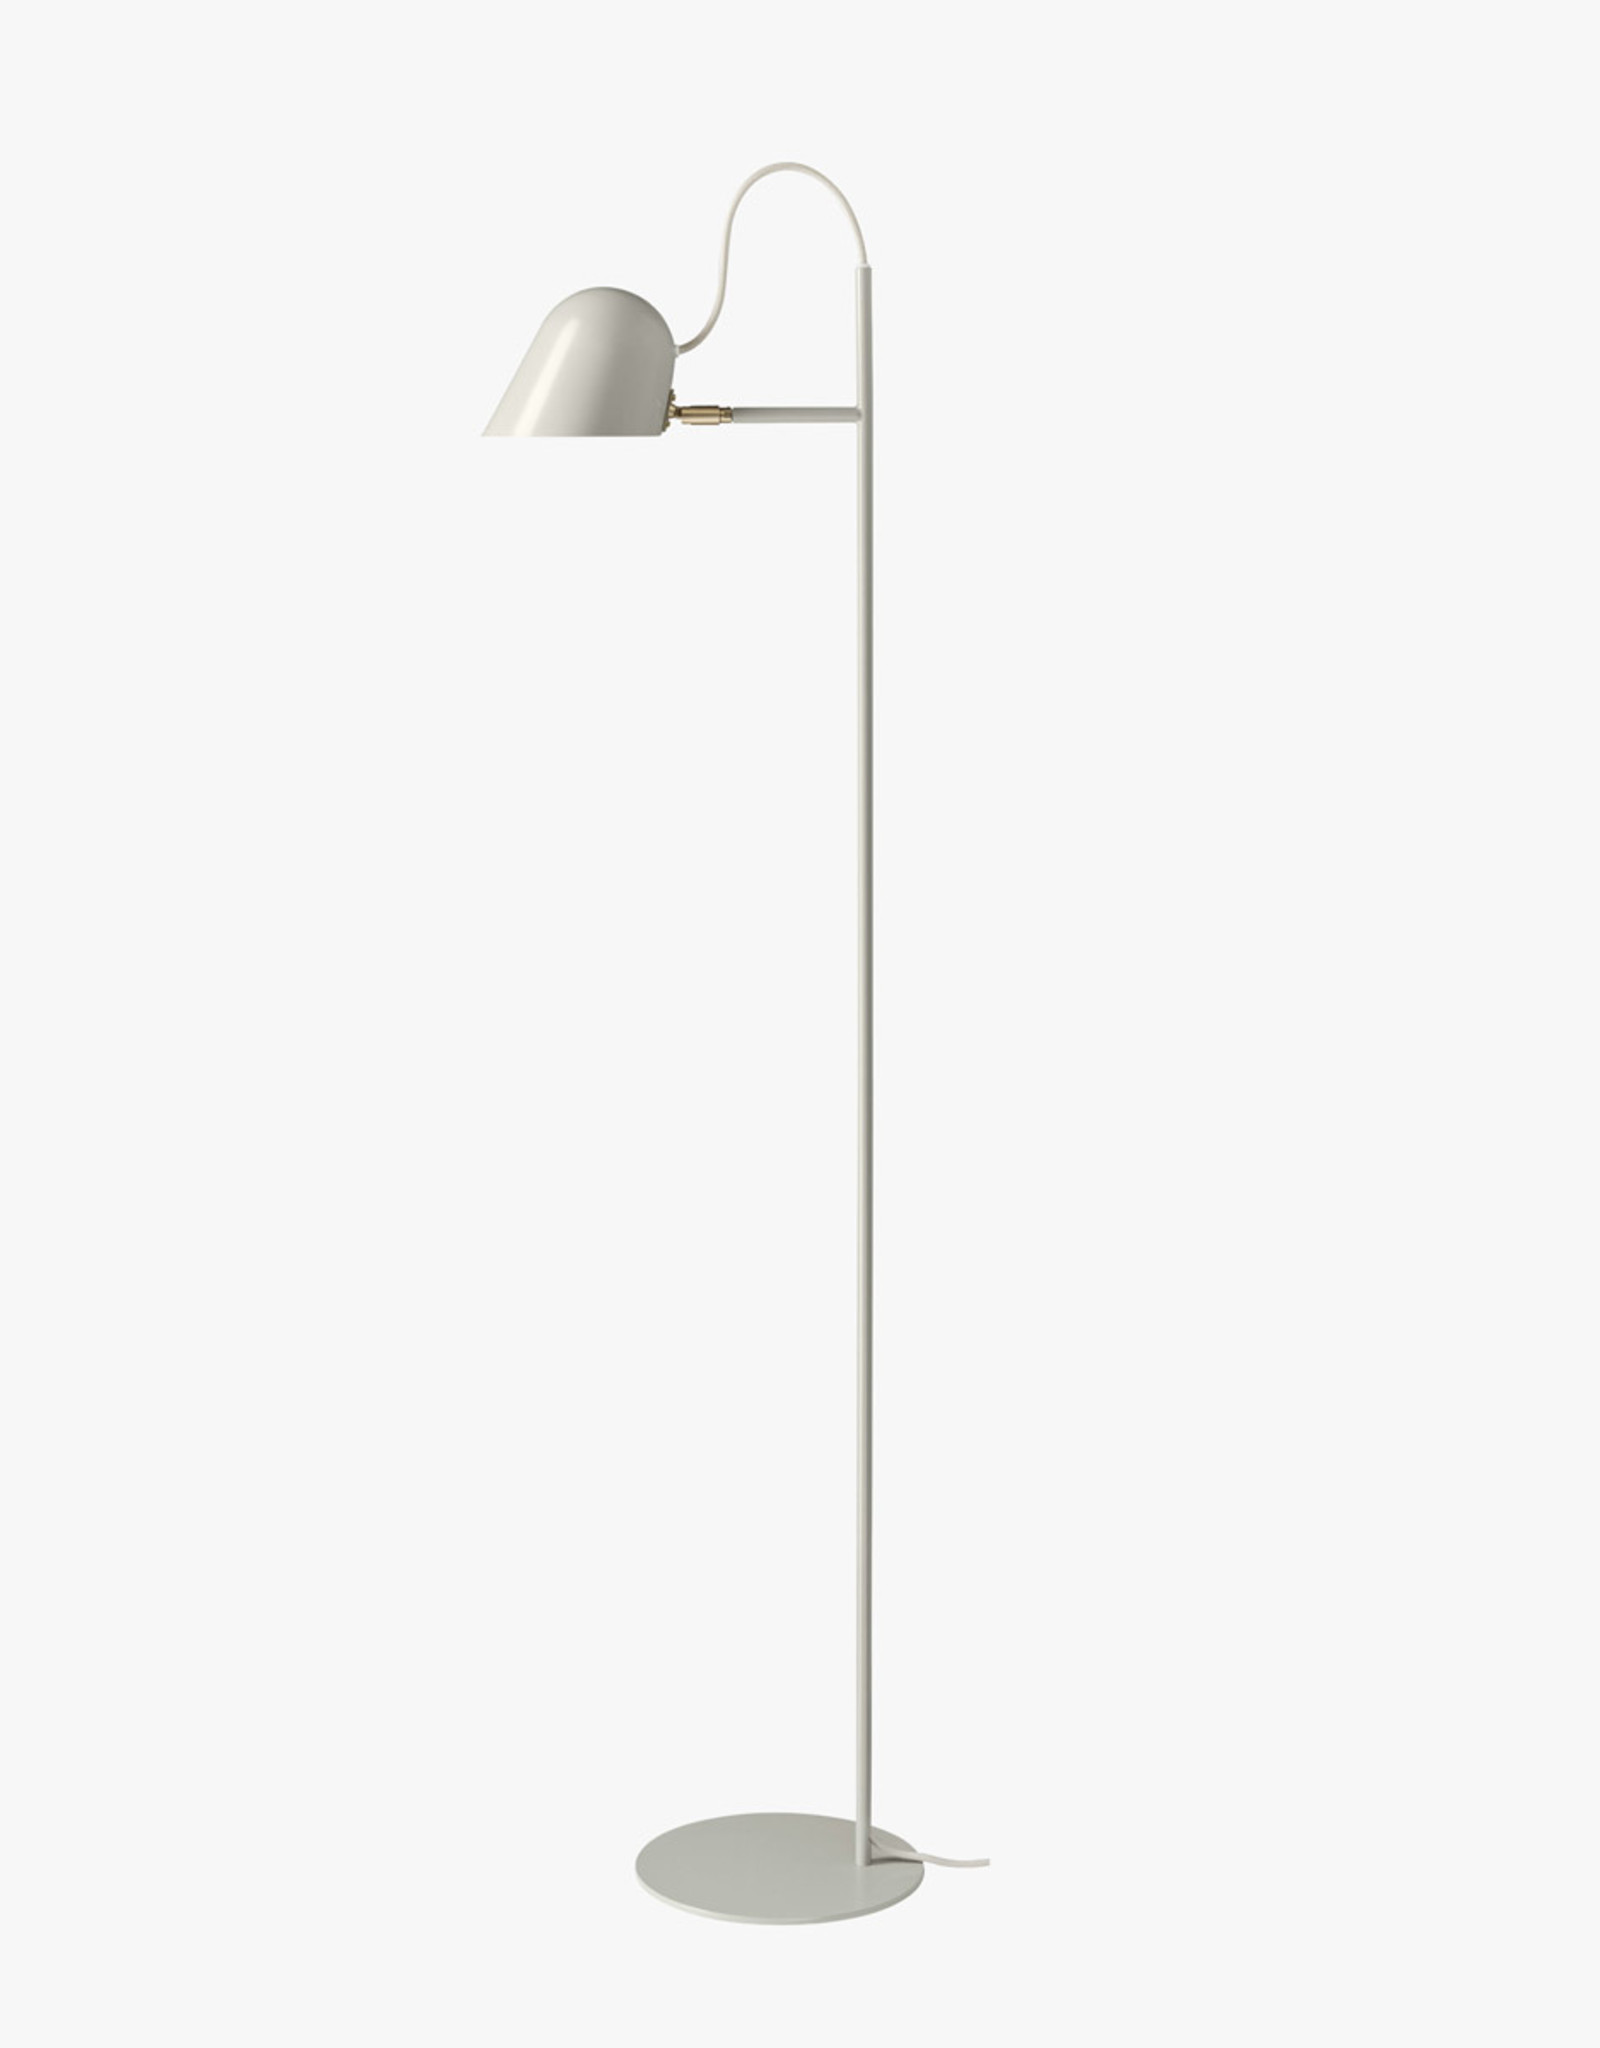 Streck floor light by Joel Karlsson | Warm grey/brass